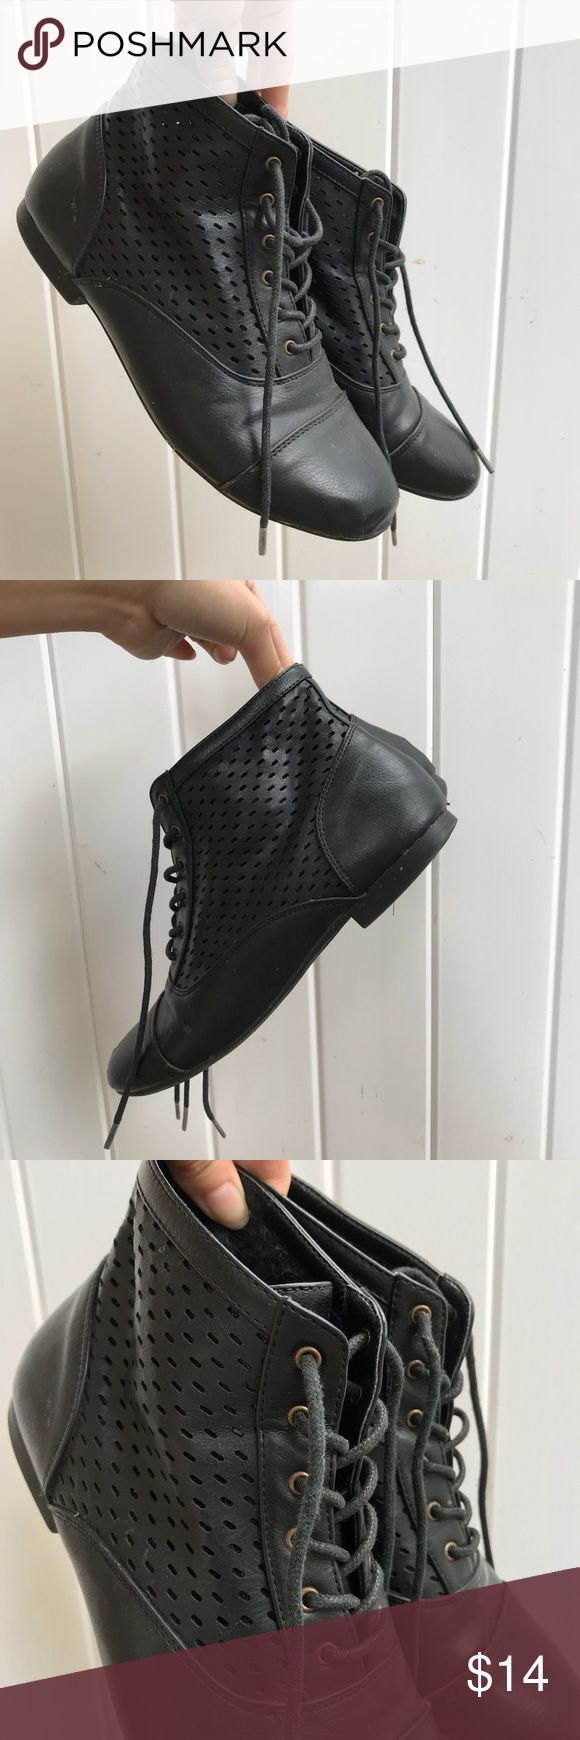 Black Leather Ankle Boots Fairly good condition! The exterior is still in very good shape. The sides of the interior are a lil more used up, but the overall shoe is still intact! Tends to fit a lil tighter than your average shoe size! PacSun Shoes Ankle Boots & Booties